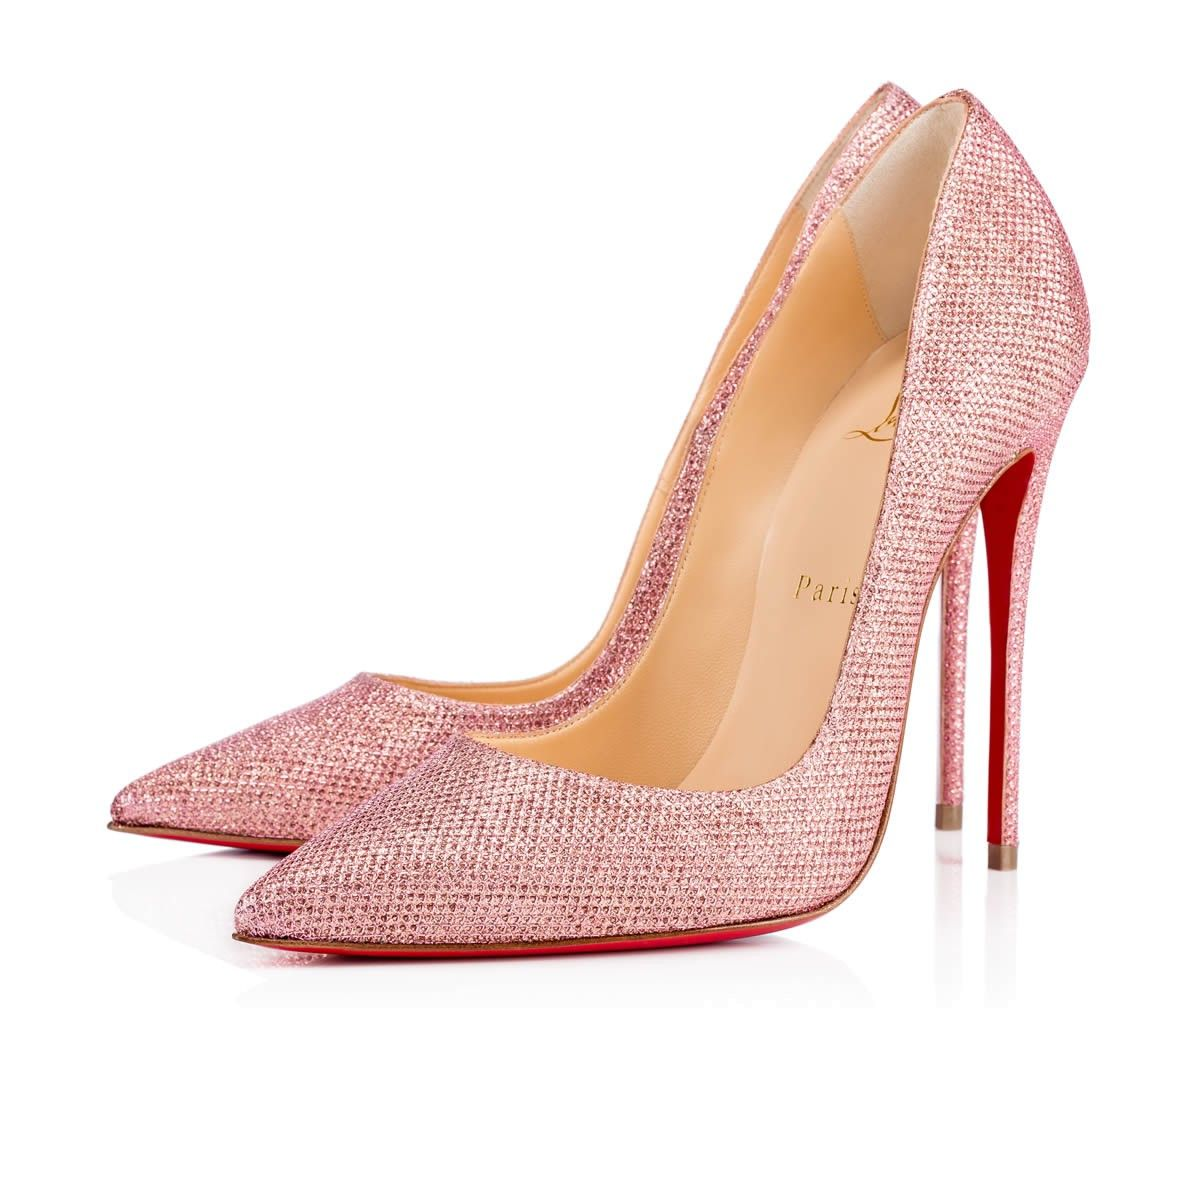 christian louboutin sparkly heels shoes